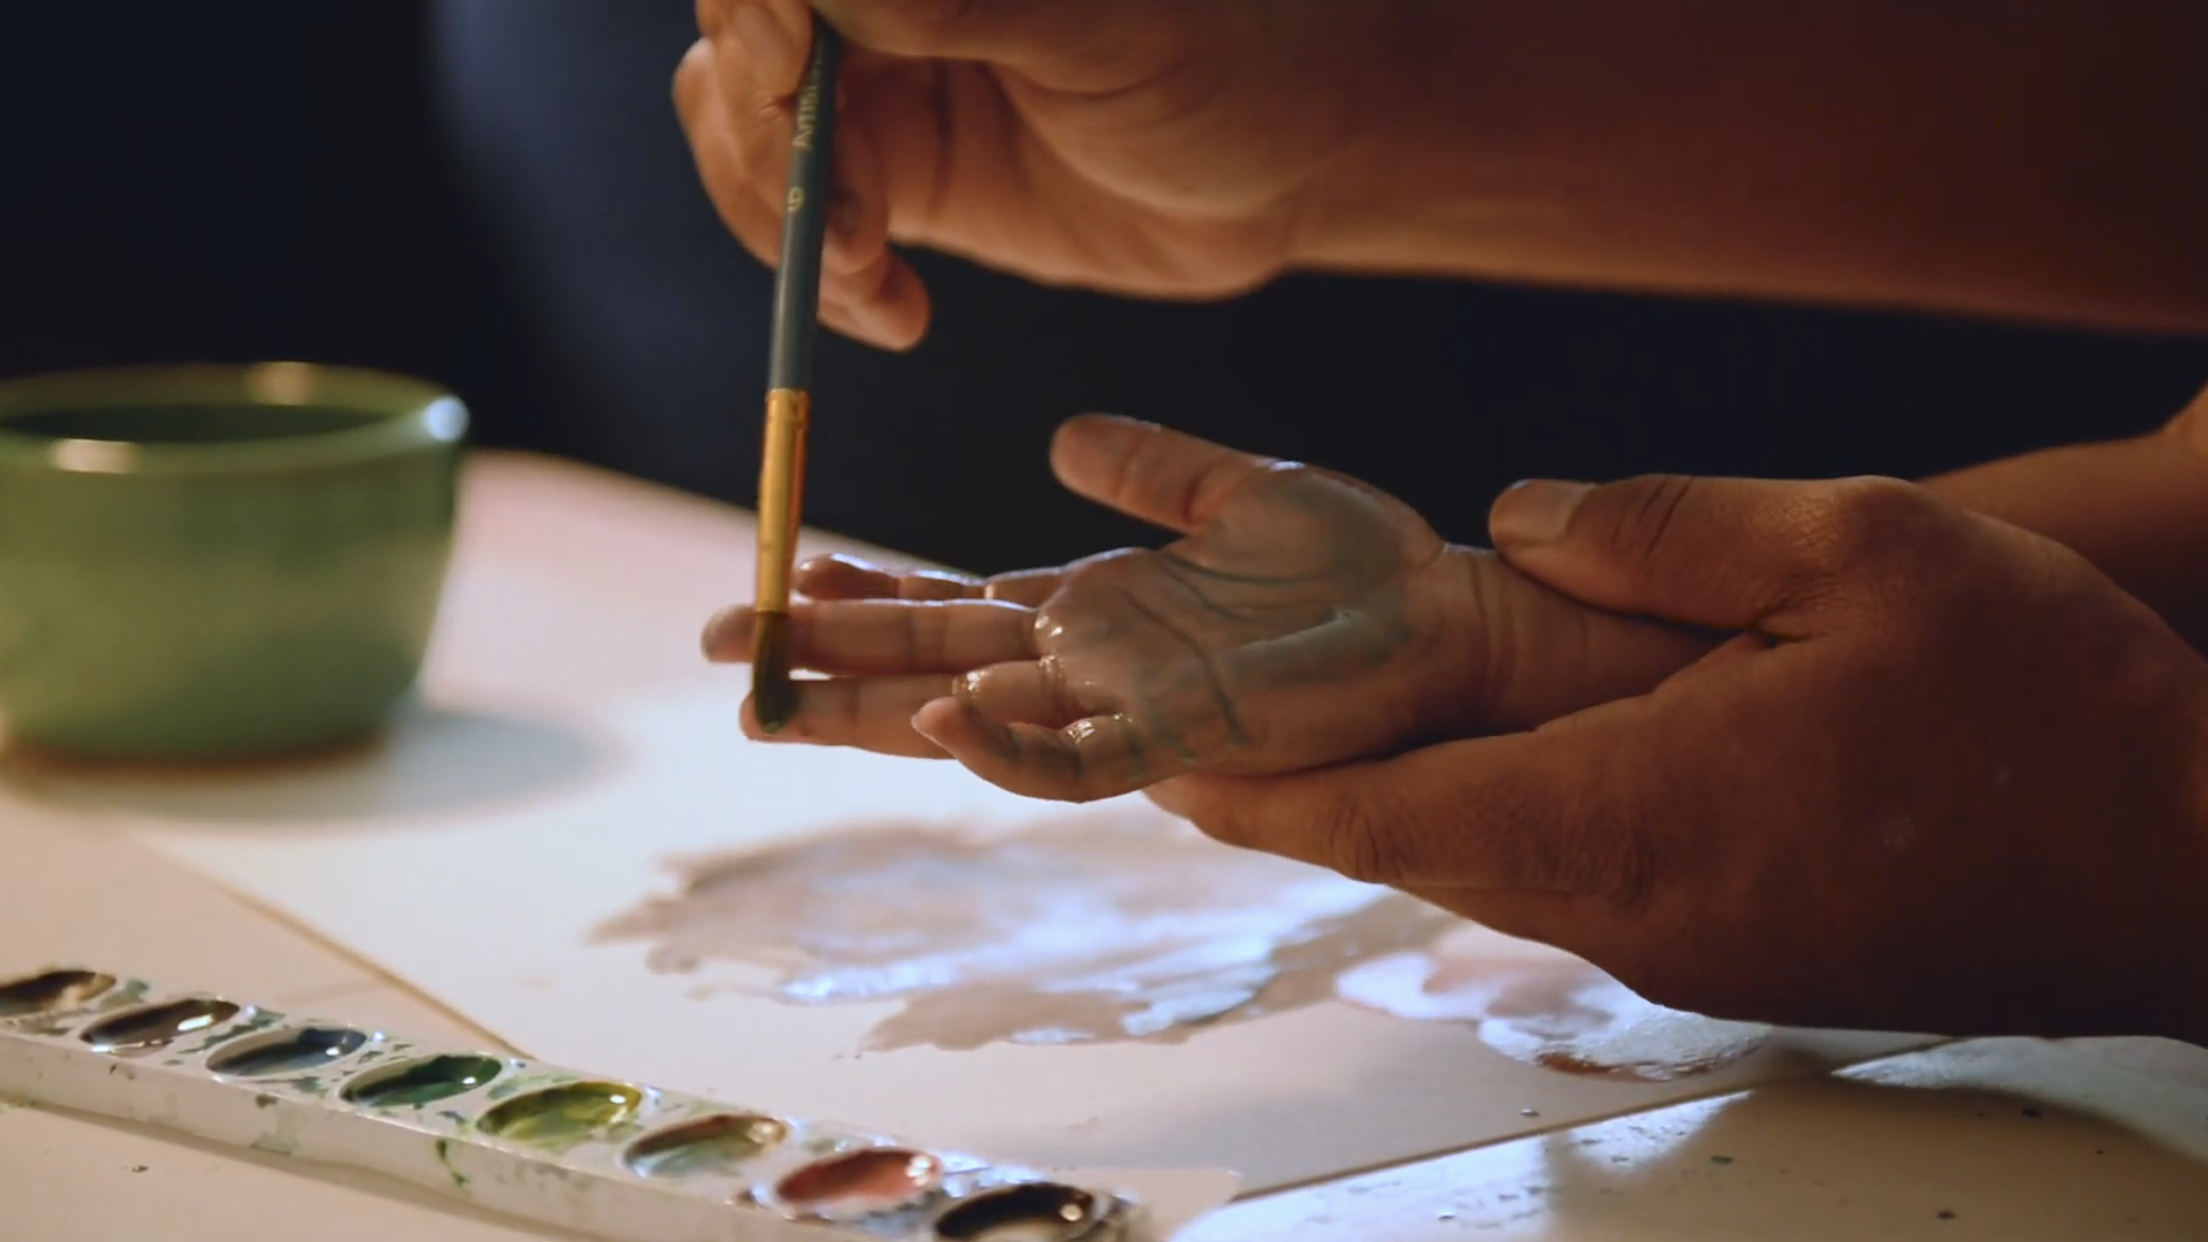 Jennifer creating art with her daughter Essence